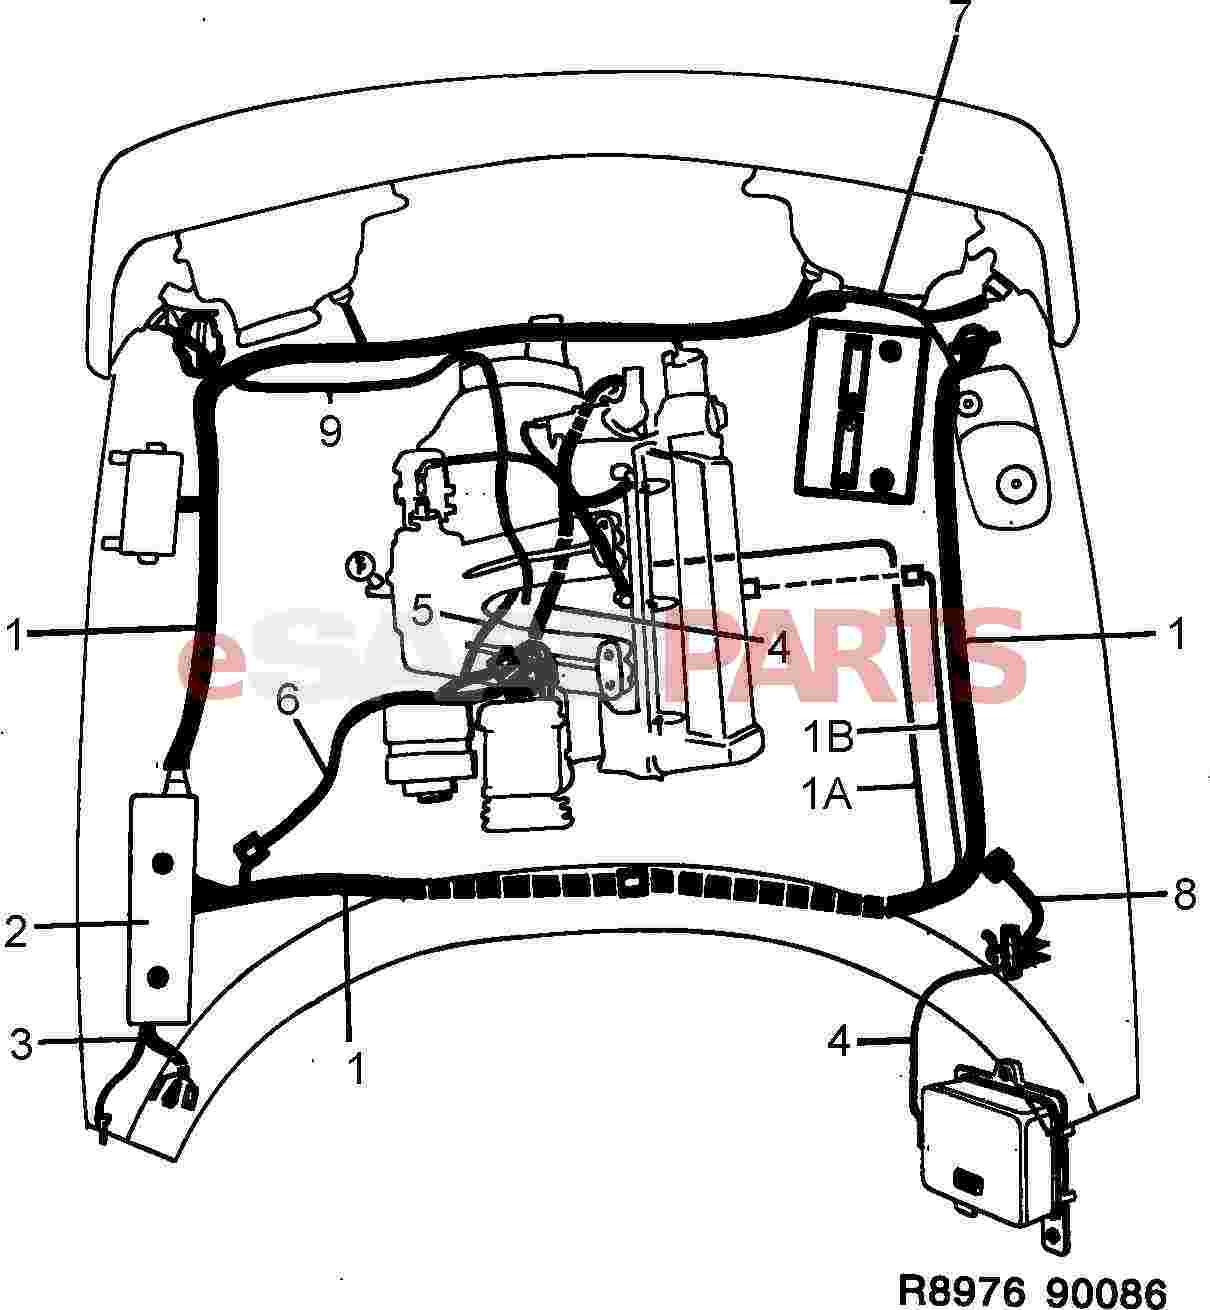 hight resolution of tags saab 9 3 wiring harness 1999 saab 9 3 electrical diagram saab 9 3 electric diagram wiring harness for saab 9 3 2003 2003 saab 9 3 radio wiring 2002